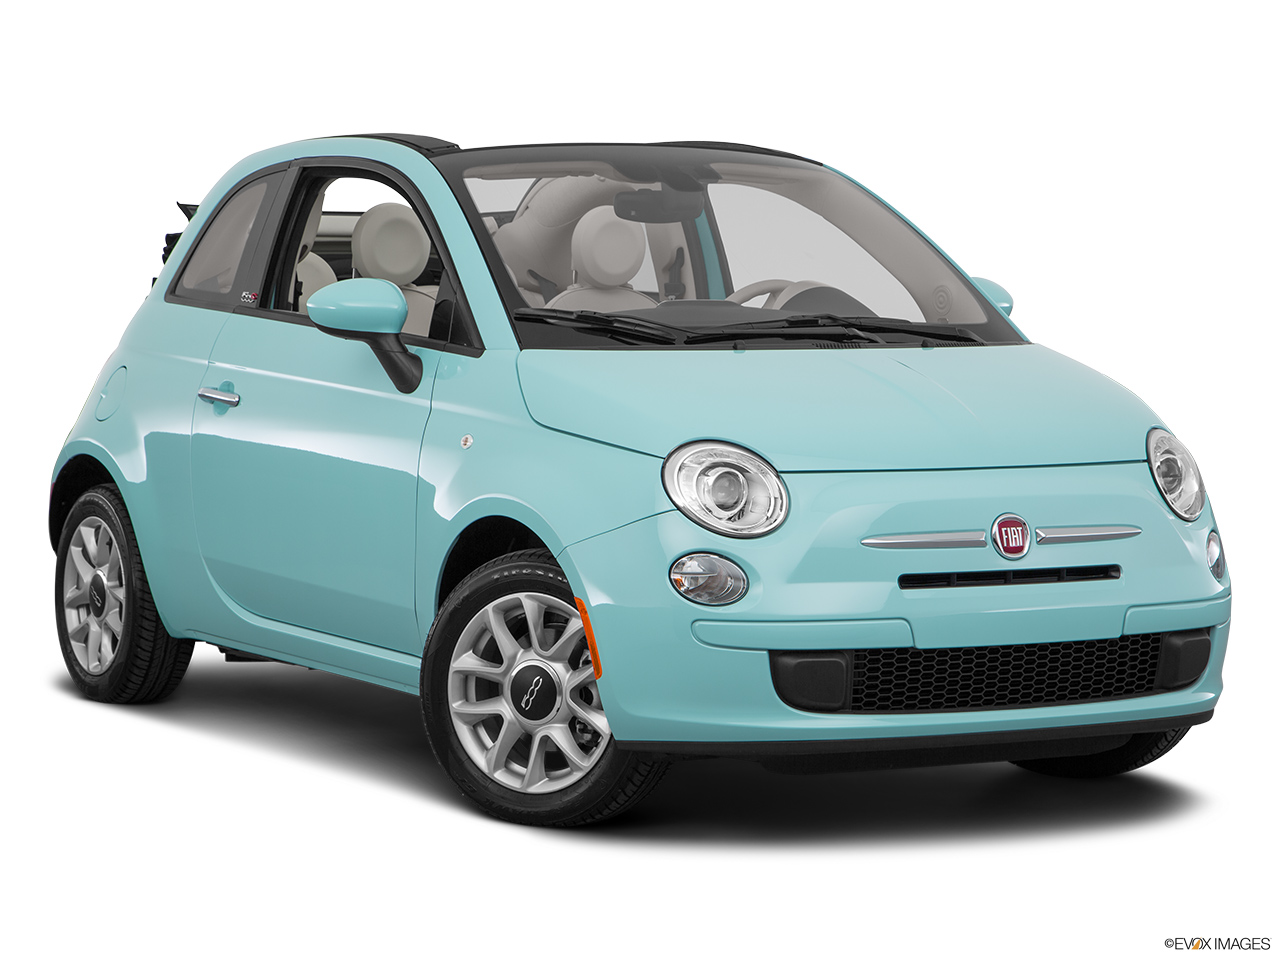 fiat 500 loa leasing fiat 500 lld fiat 500 partir de 150 mois sans apport loa facile leasing. Black Bedroom Furniture Sets. Home Design Ideas